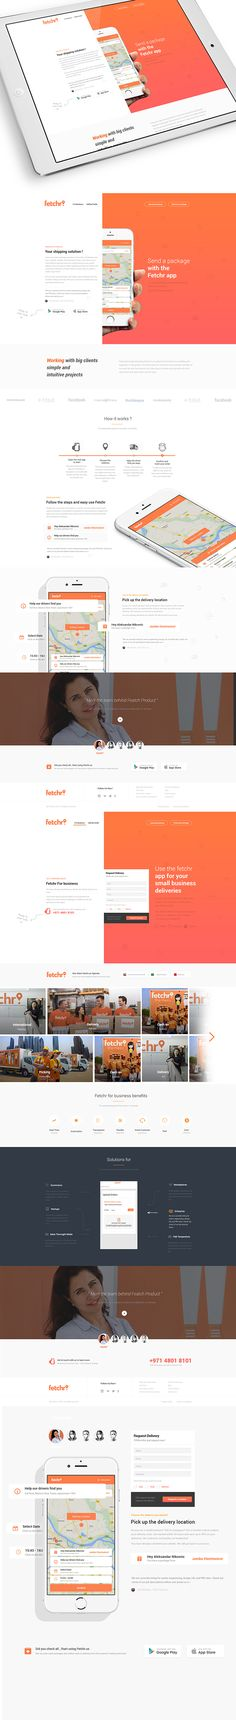 Fetchr.us your shipping solution Web Design on Behance